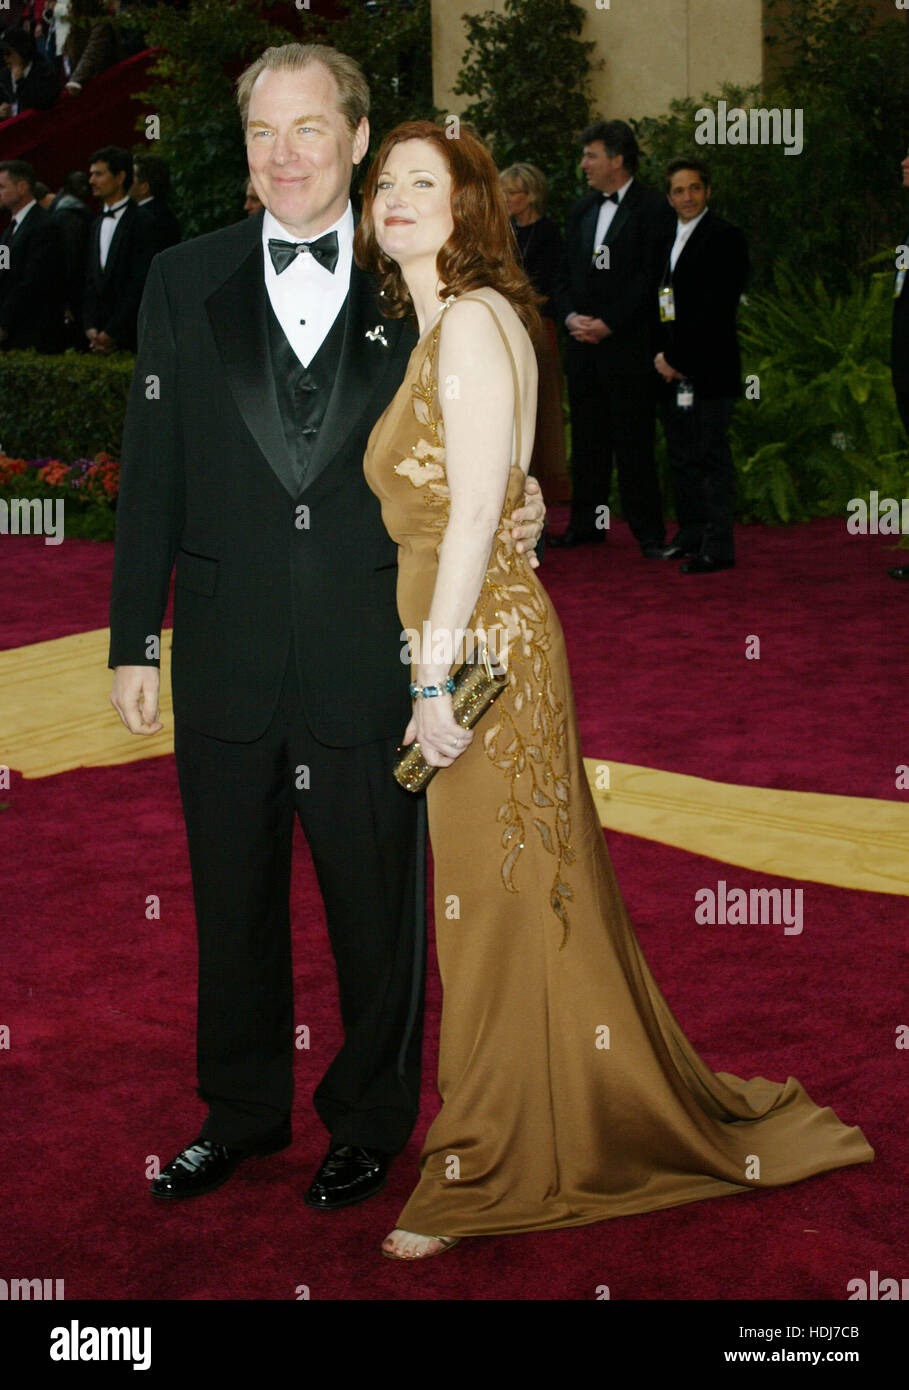 Michael McKean and Annette O'Toole at the Academy Awards  in Hollywood,  California on February 29, 2004.  Photo credit: Francis Specker Stock Photo